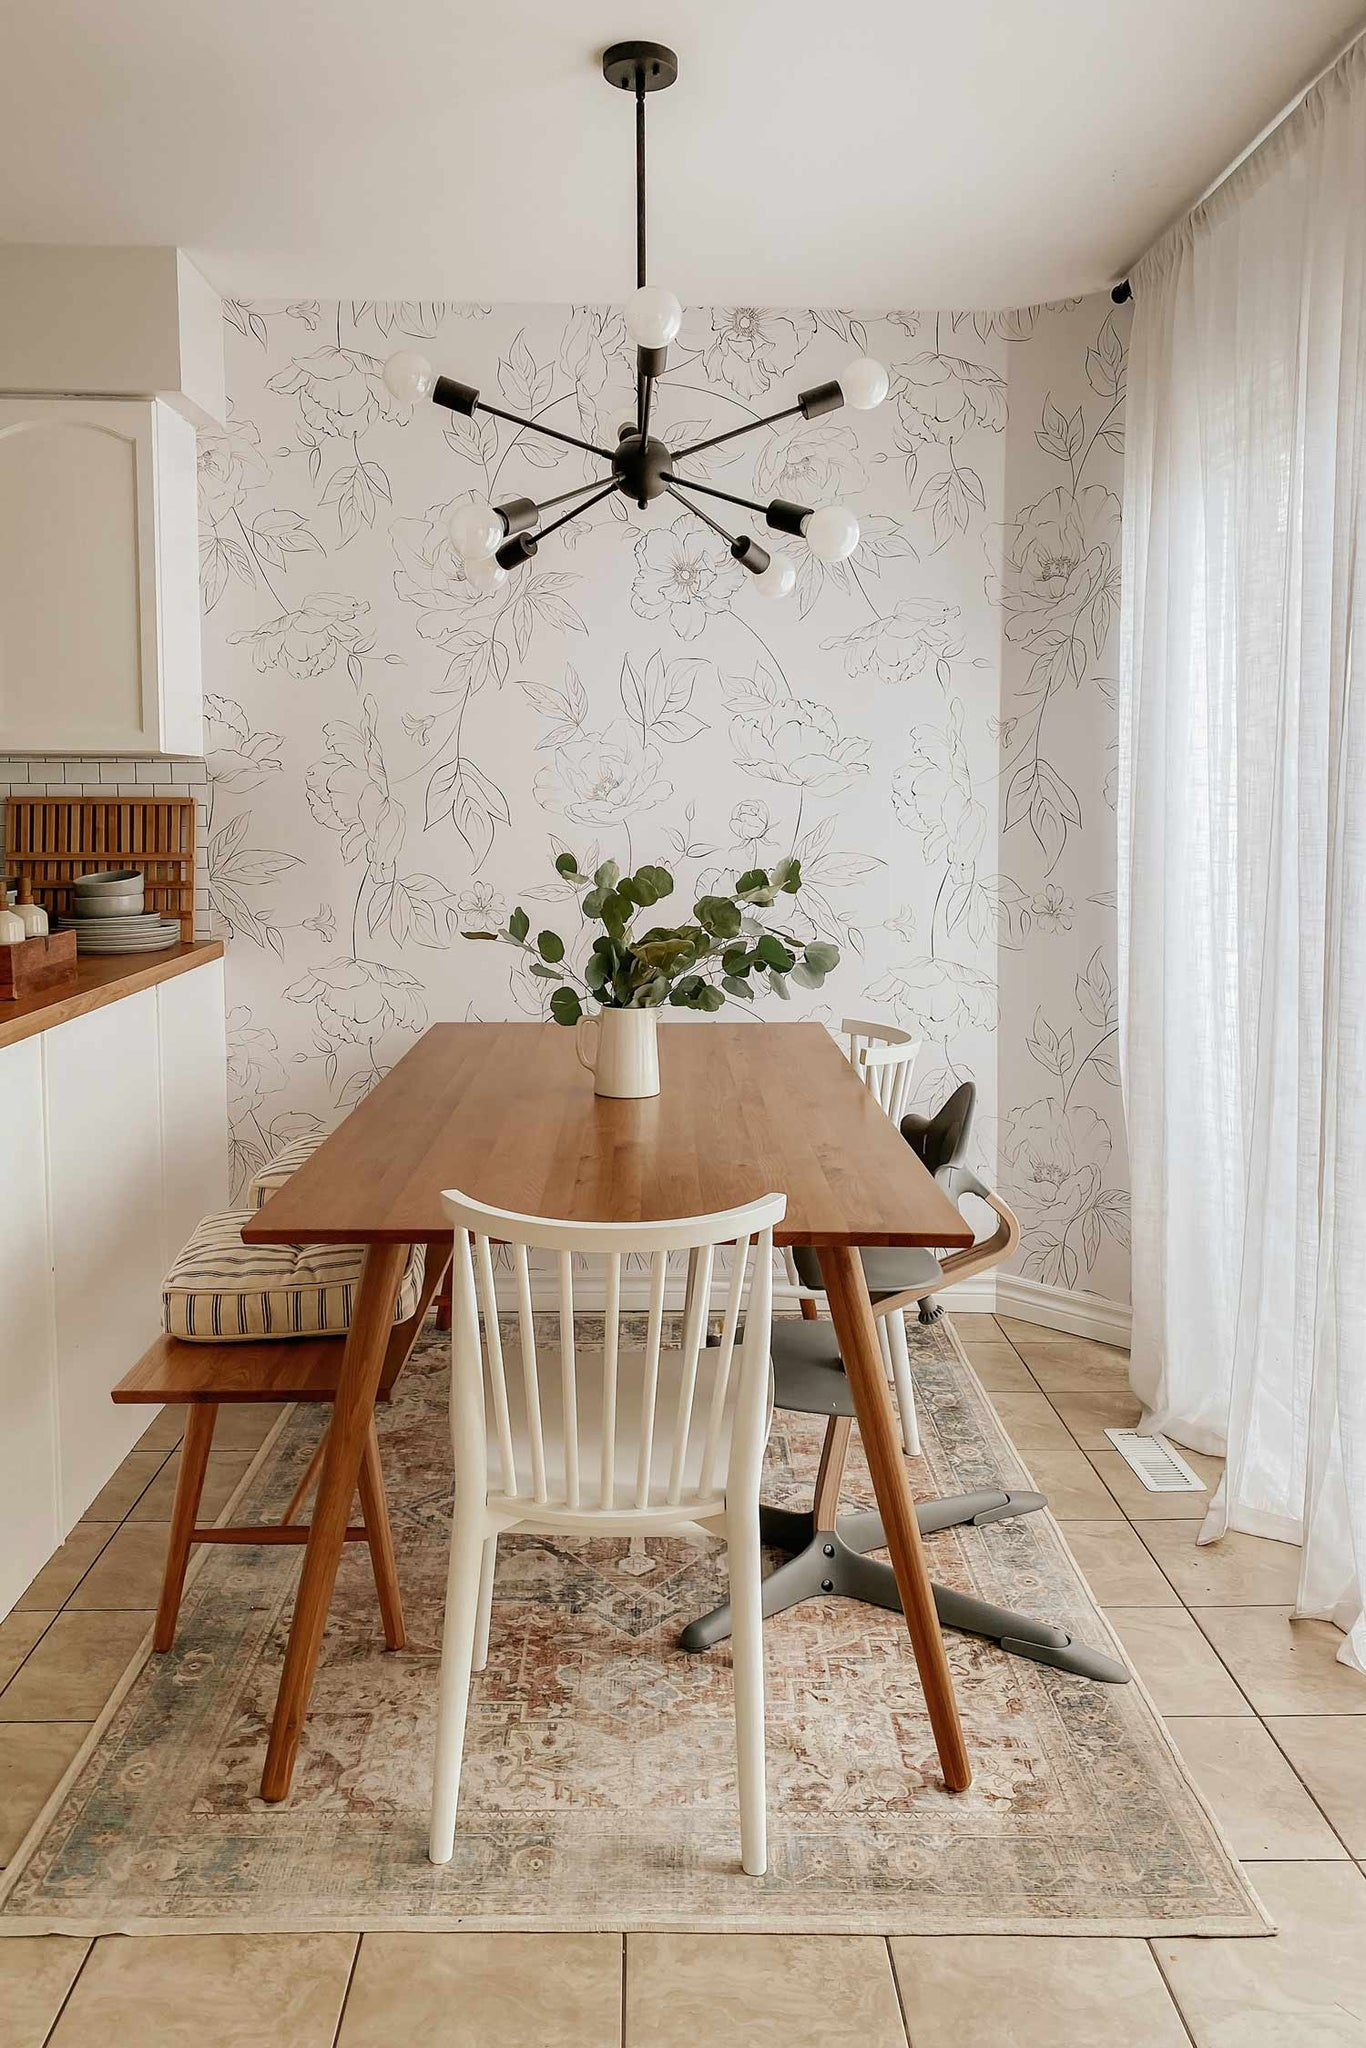 Minimal bohemian style dining room interior with oversized floral wallpaper accent wall